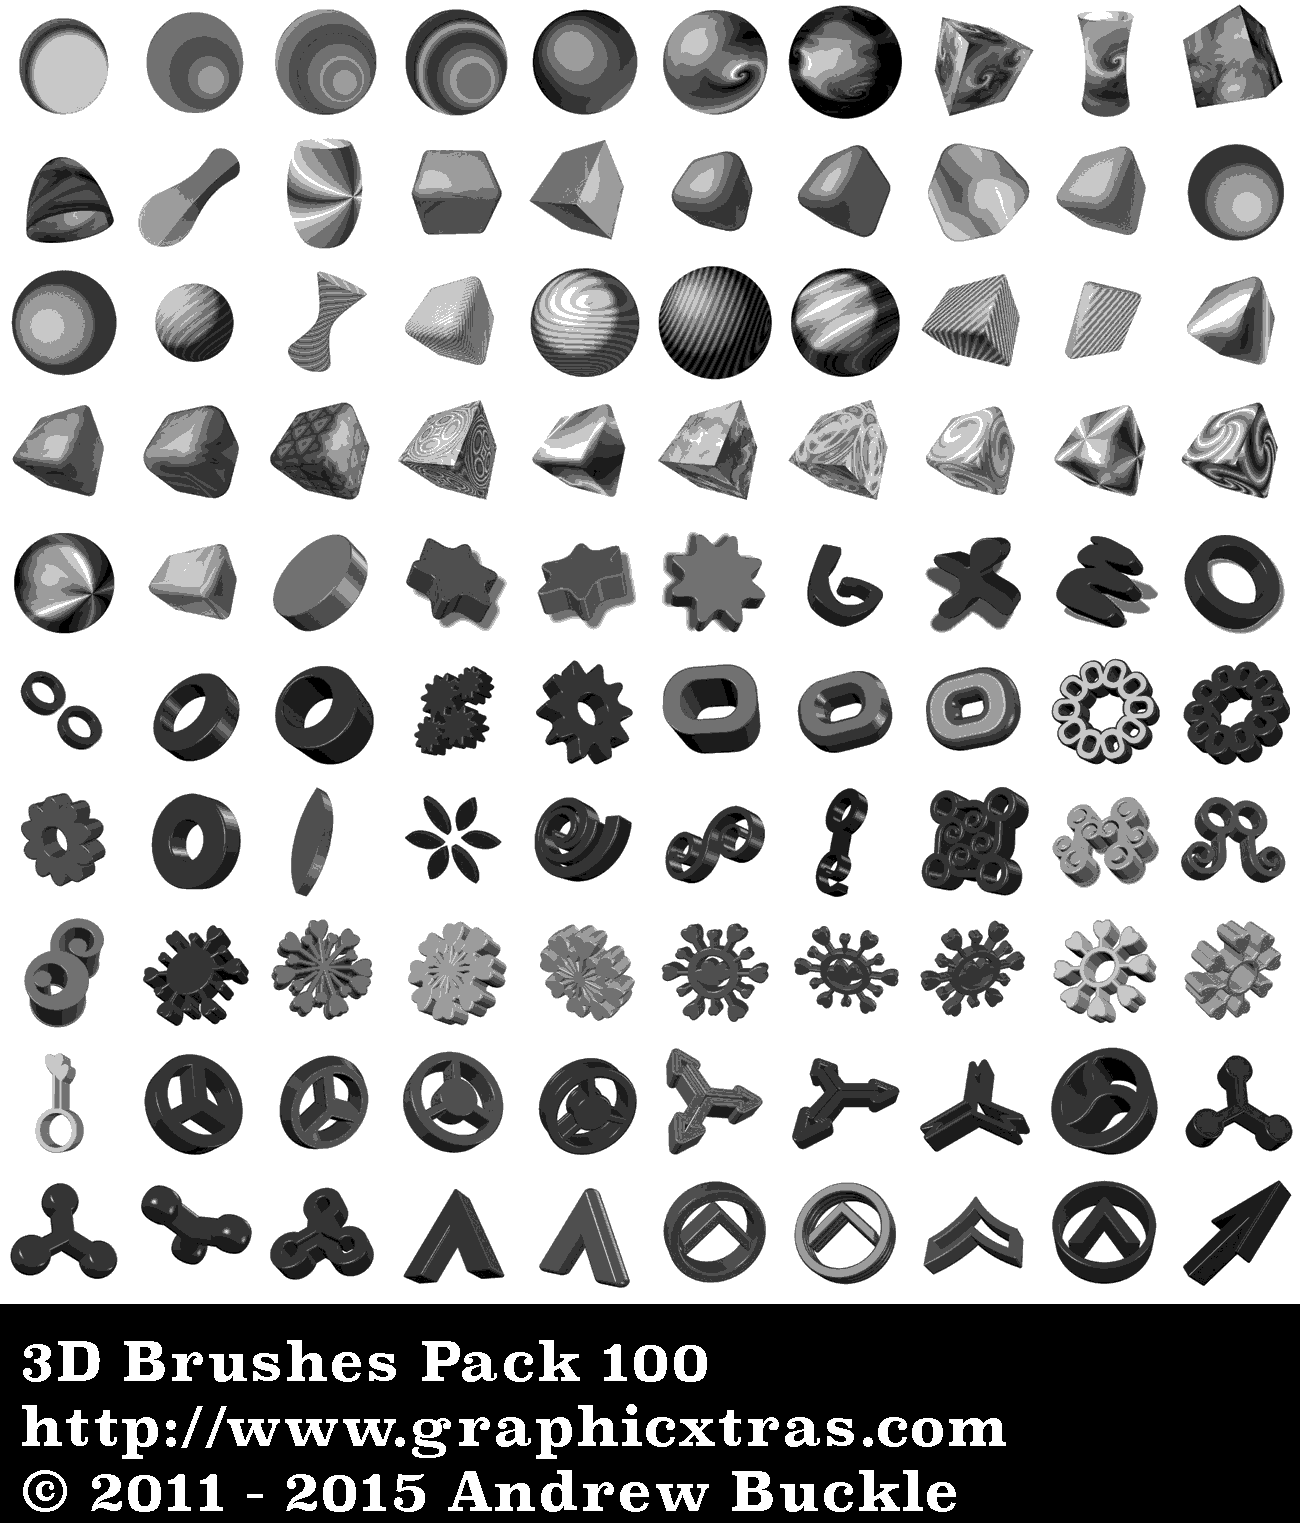 14 Free Adobe Photoshop Elements Brushes Images